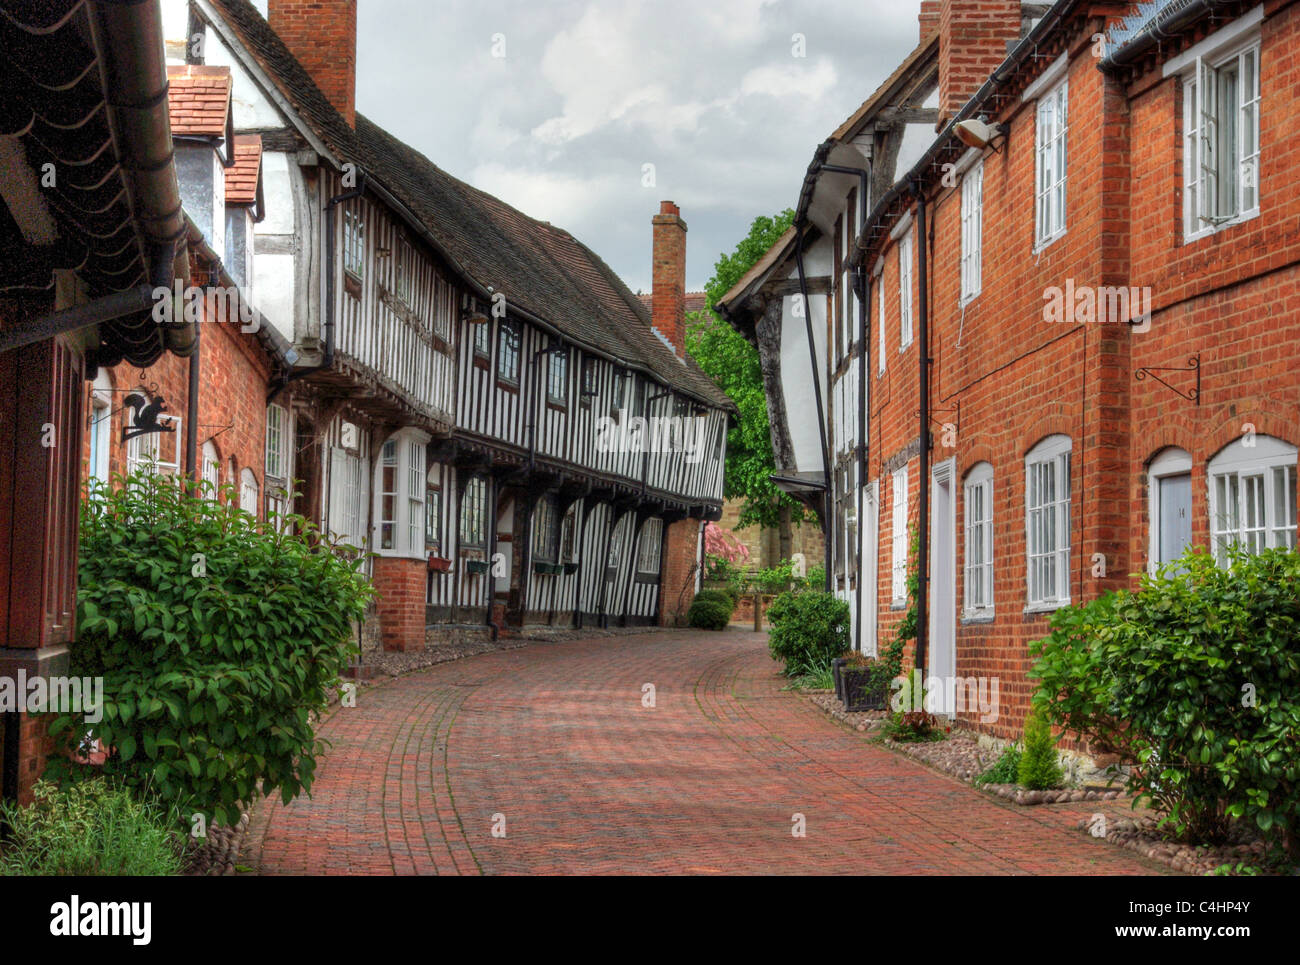 Half timbered cottages in Malt Mill Lane, Alcester, UK - Stock Image